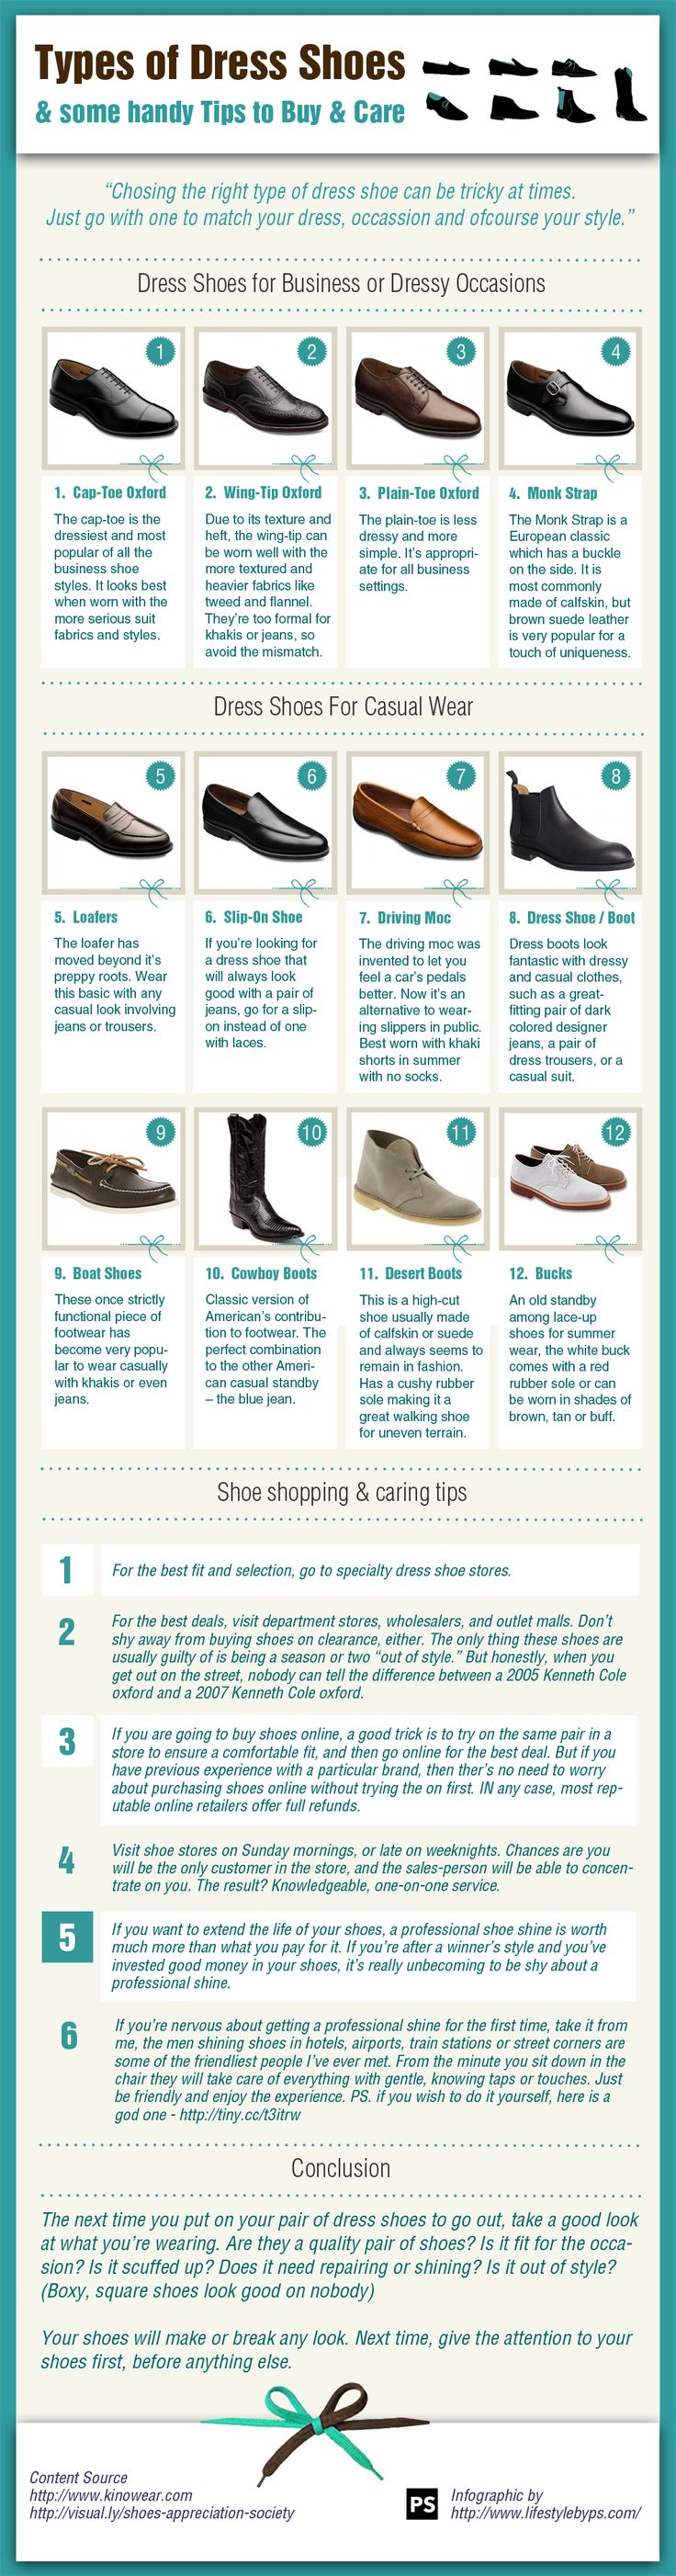 Types of Dress Shoes and some Handy Tips to Buy and Care. Choosing the right type of shoes can be tricky at times, just go with one to match your d